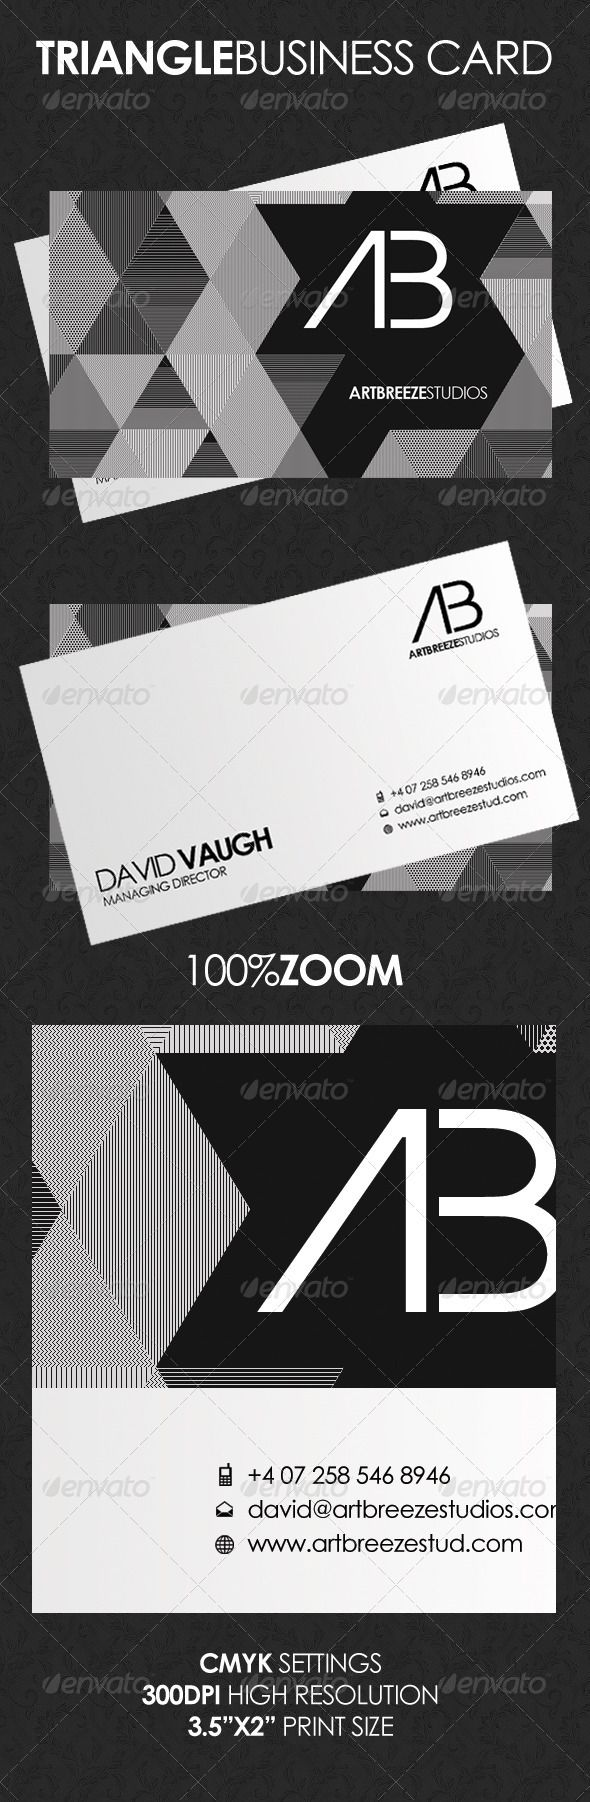 90 best Print Templates images on Pinterest | Flyers, Corporate ...